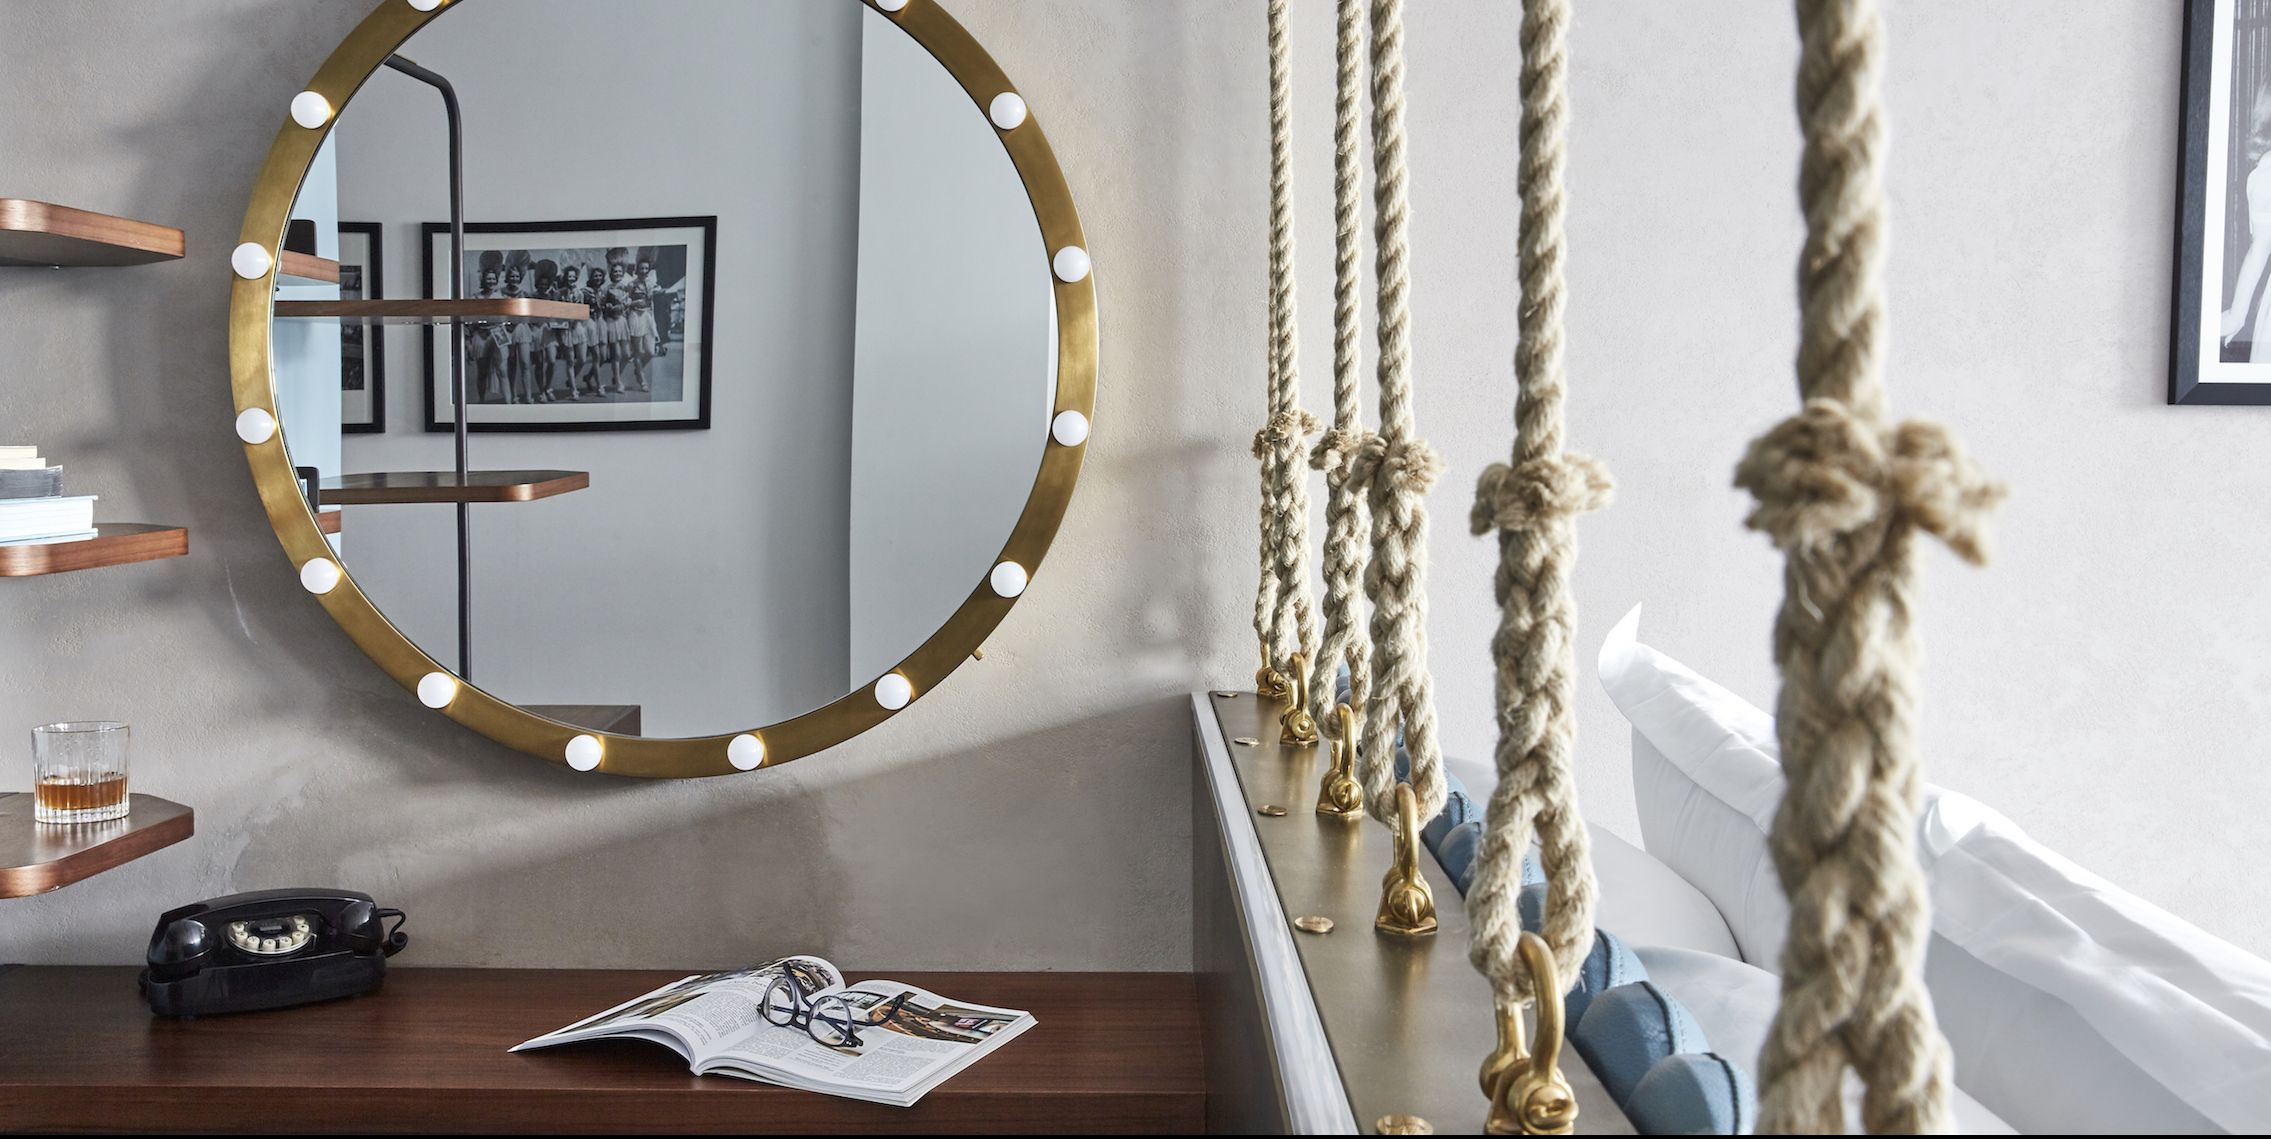 Hotel Indigo London at 1 Leicester Square, IHG hotel - theatre and cinematic themed boutique hotel